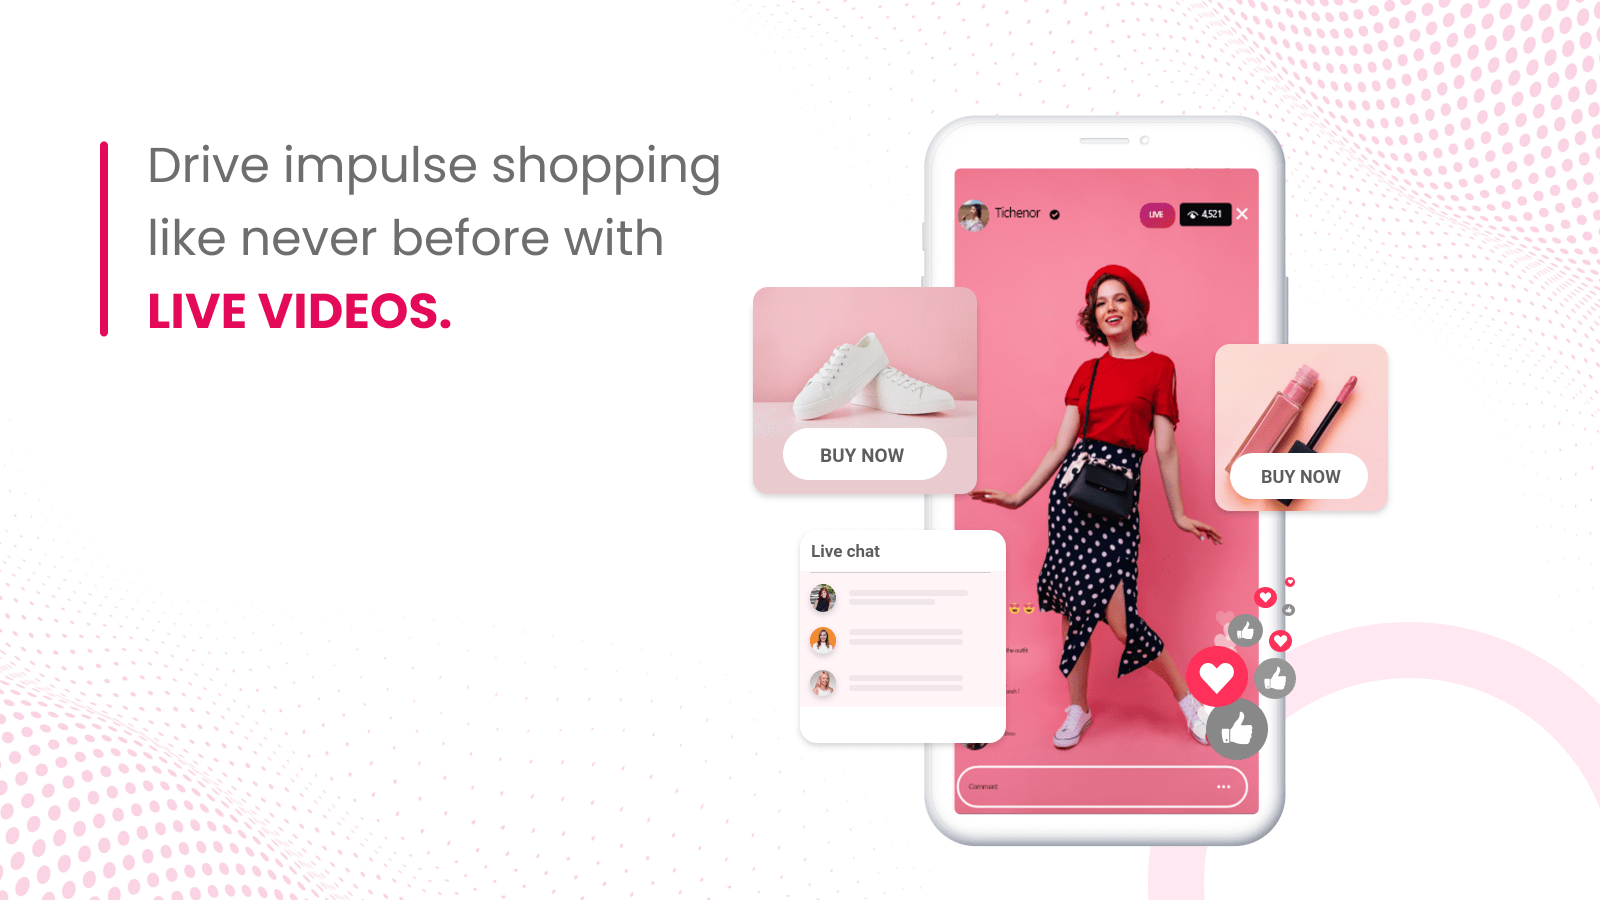 Drive impulse shopping like never before with live videos